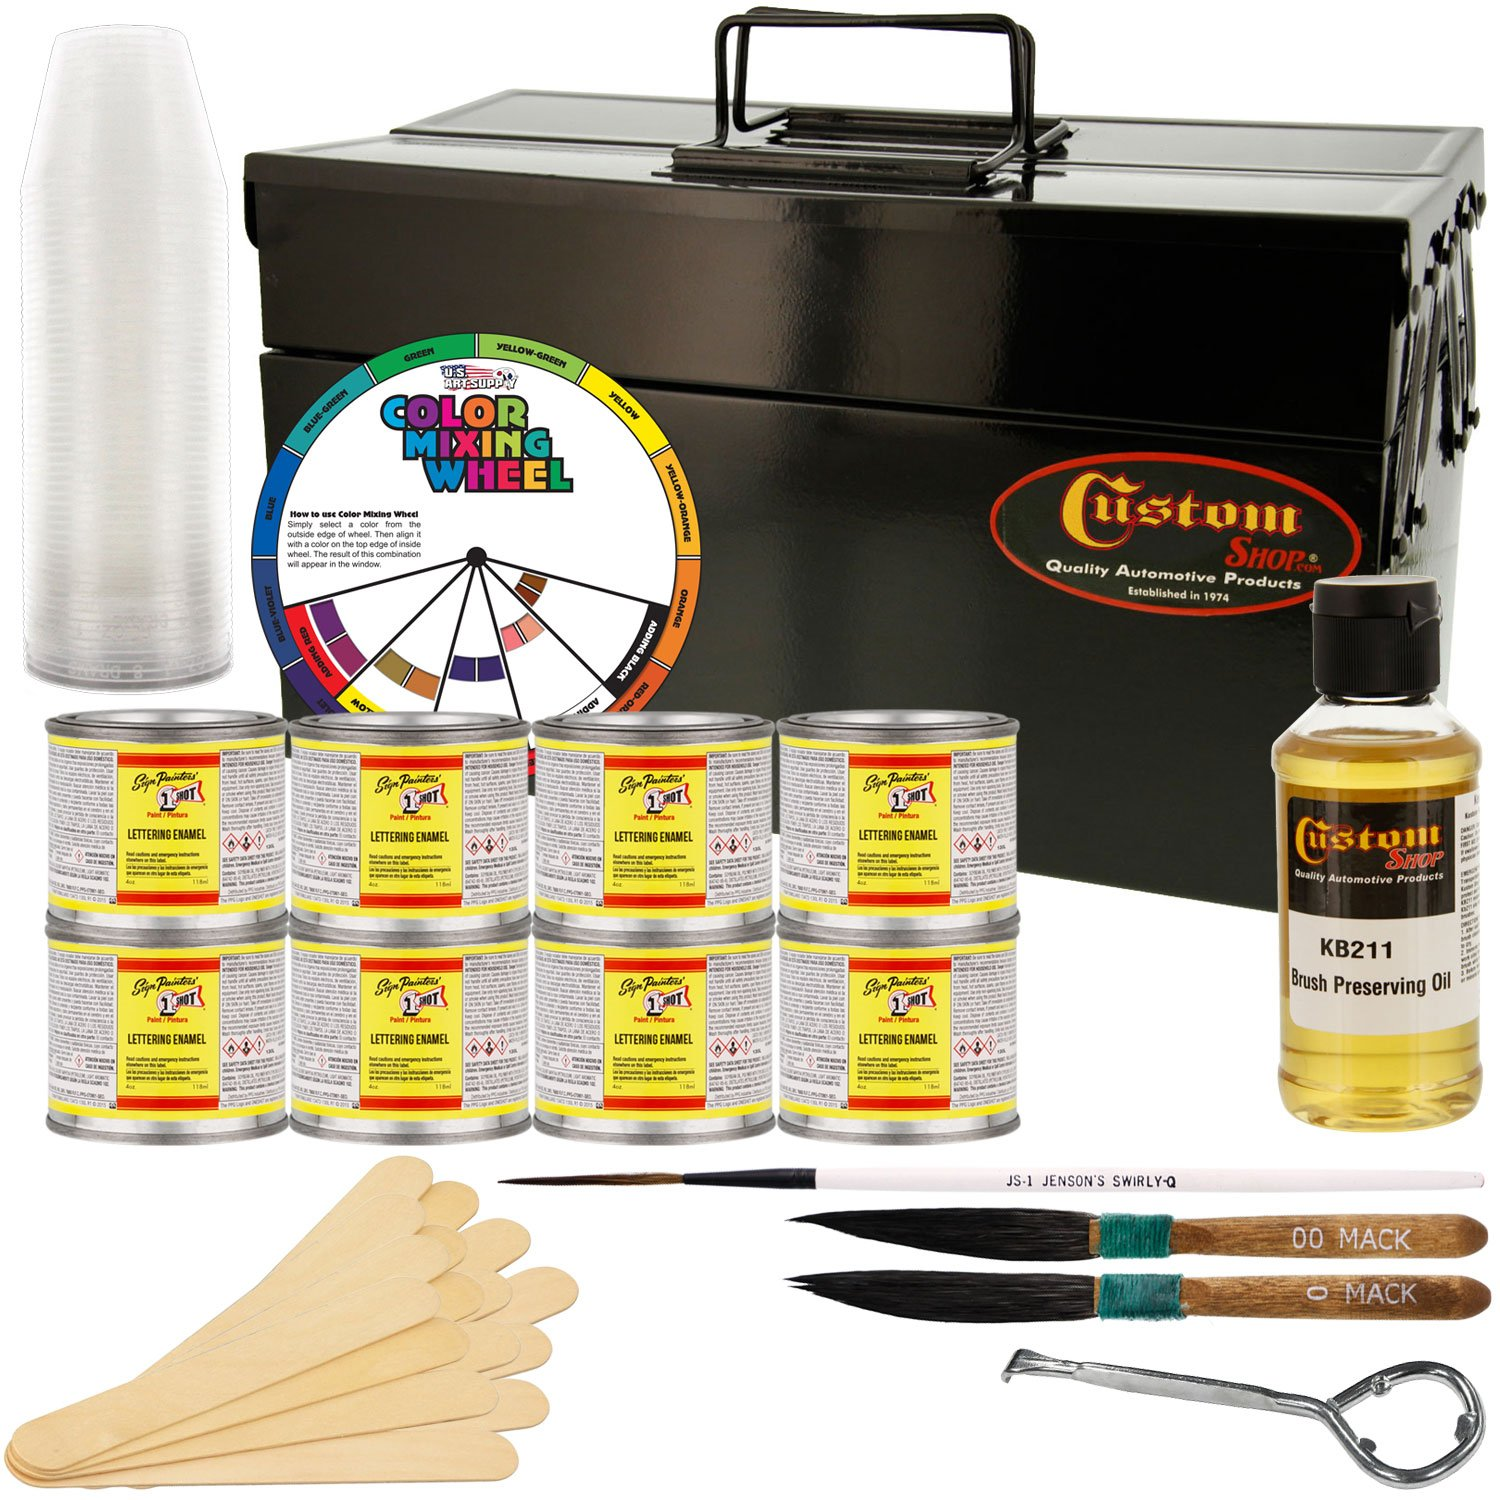 One Shot Automotive Complete Striper Pinstriping Starter Kit - 8 Colors